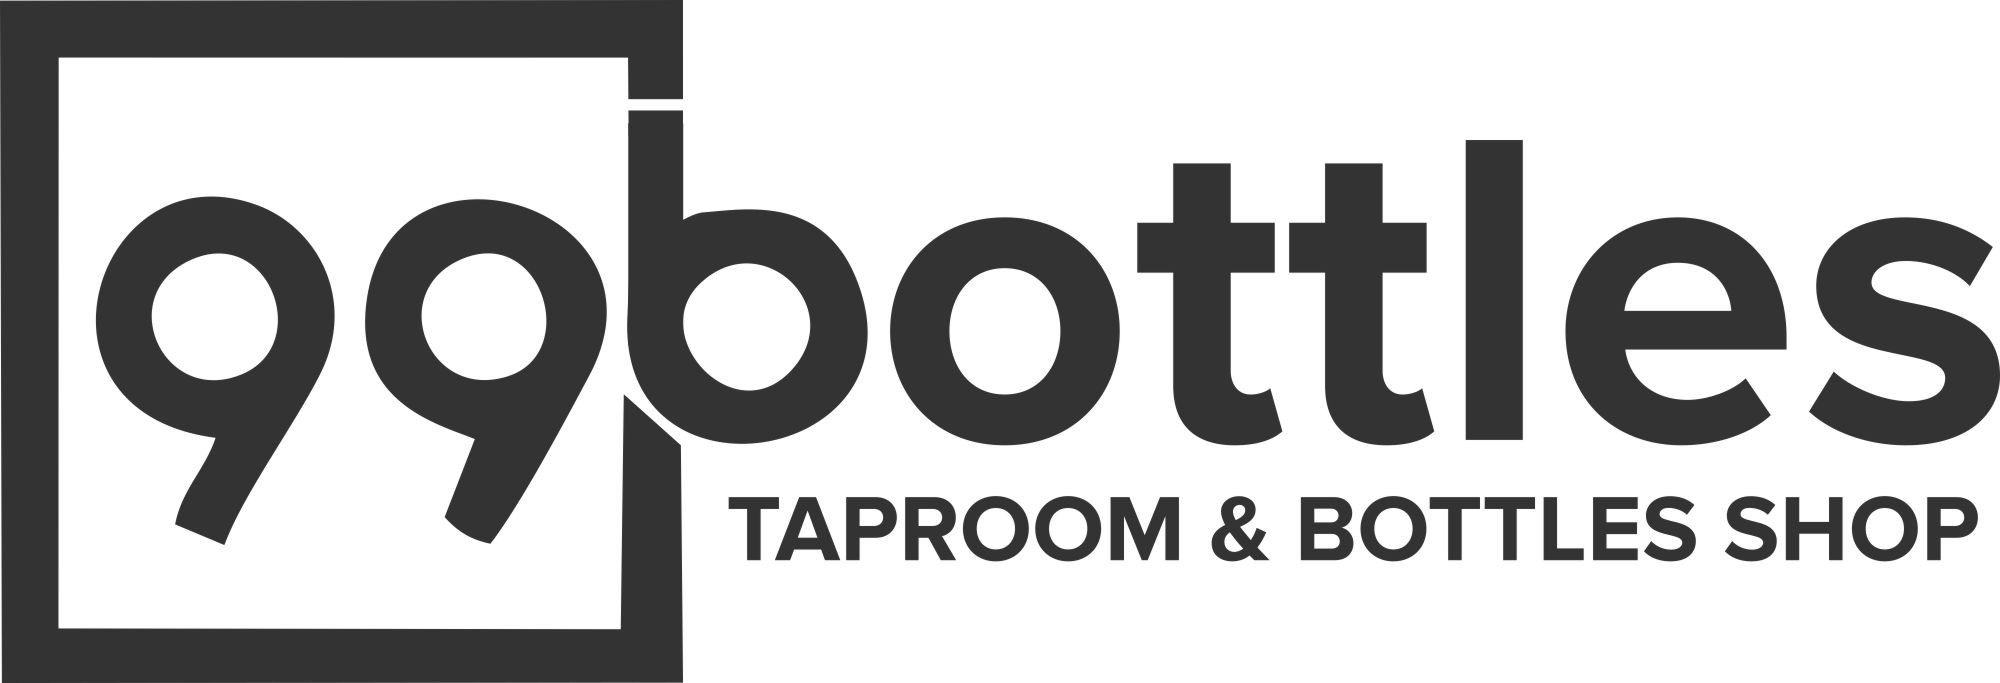 design a modern sophisticated yet hip logo for a bottle shop tap room with eats